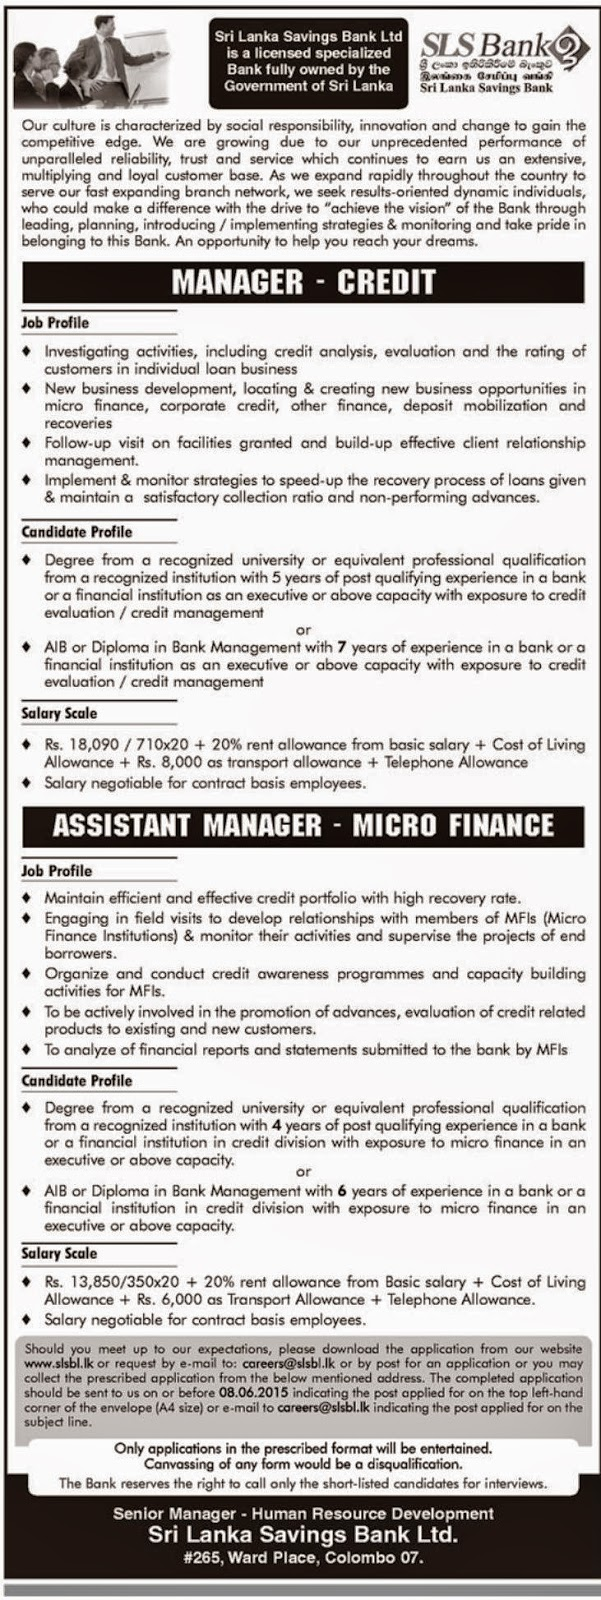 Ministry of finance vacancies in sri lanka